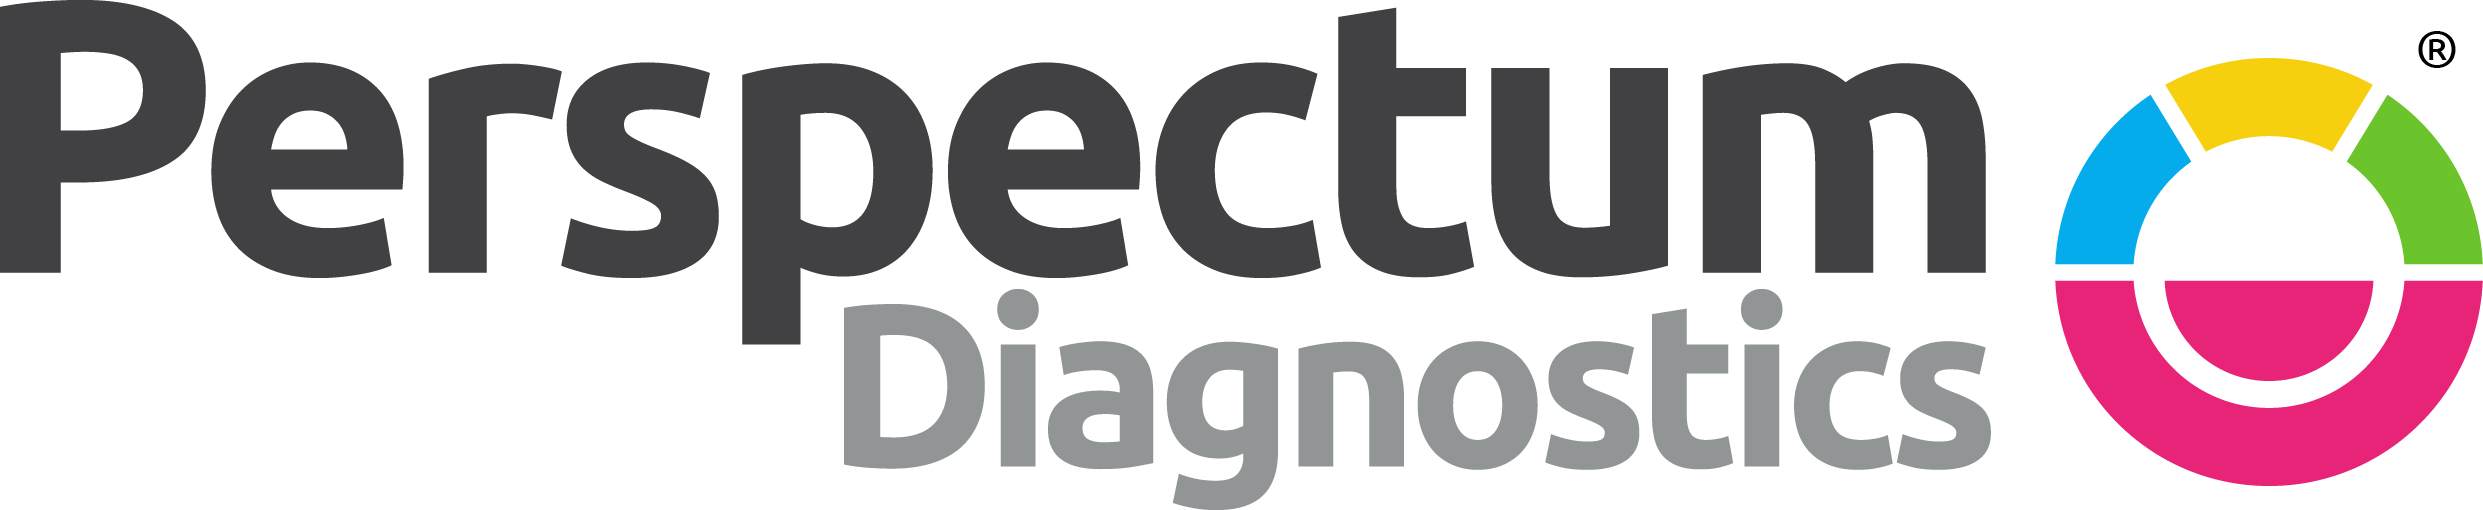 pd-logo-with-r.png